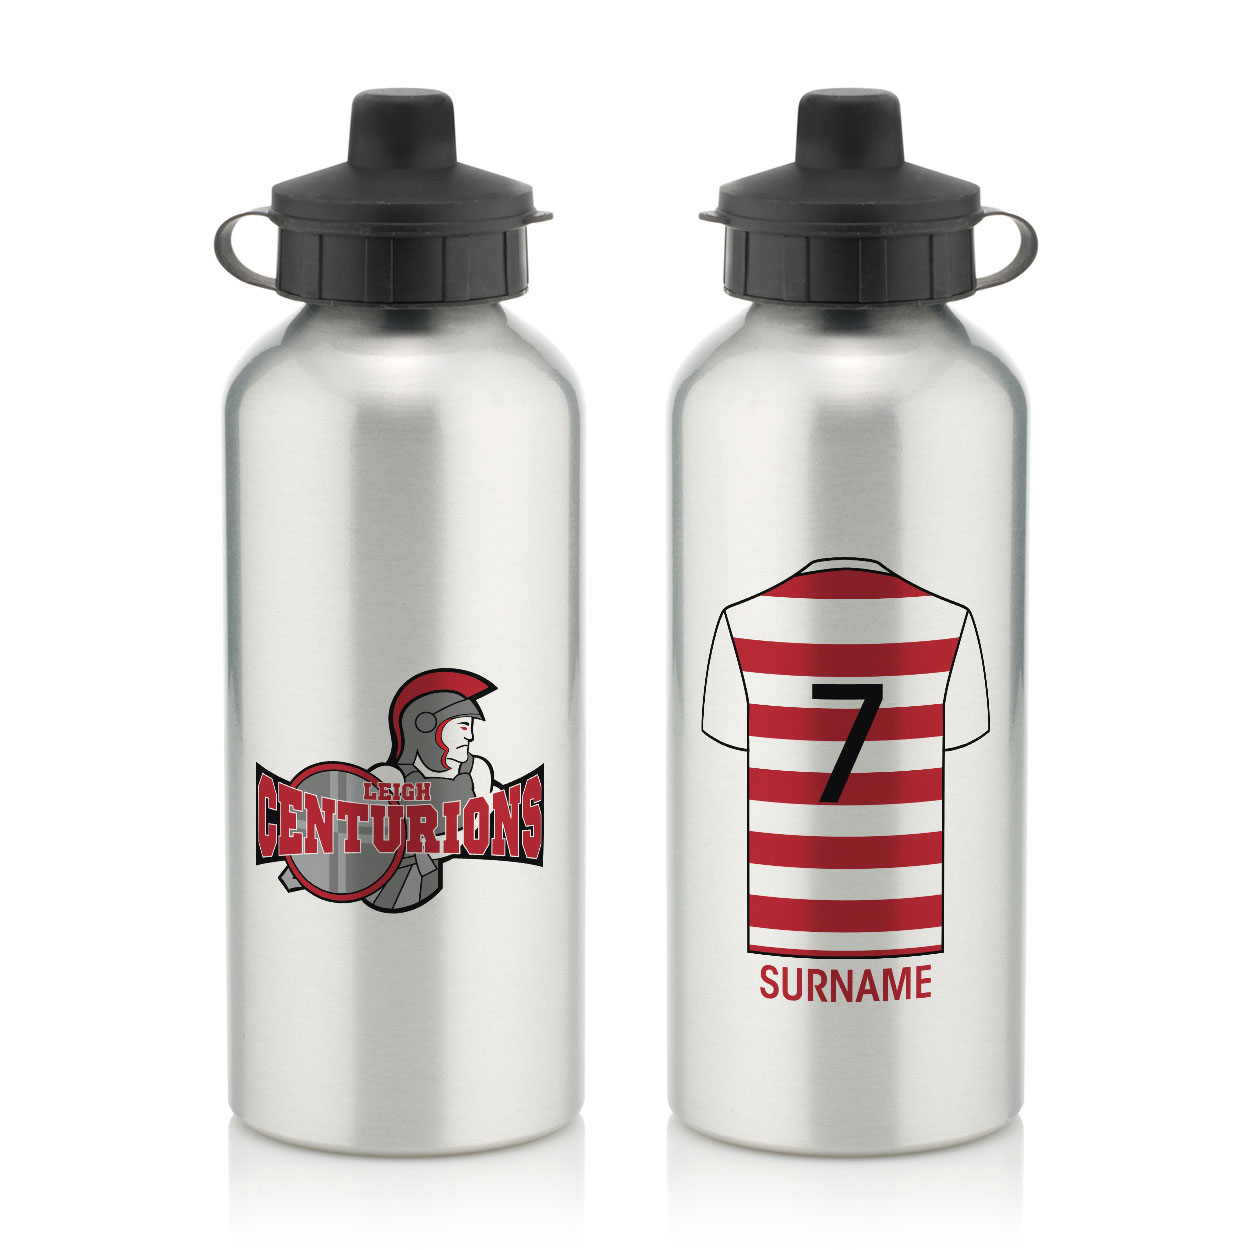 Leigh Centurions Aluminium Water Bottle